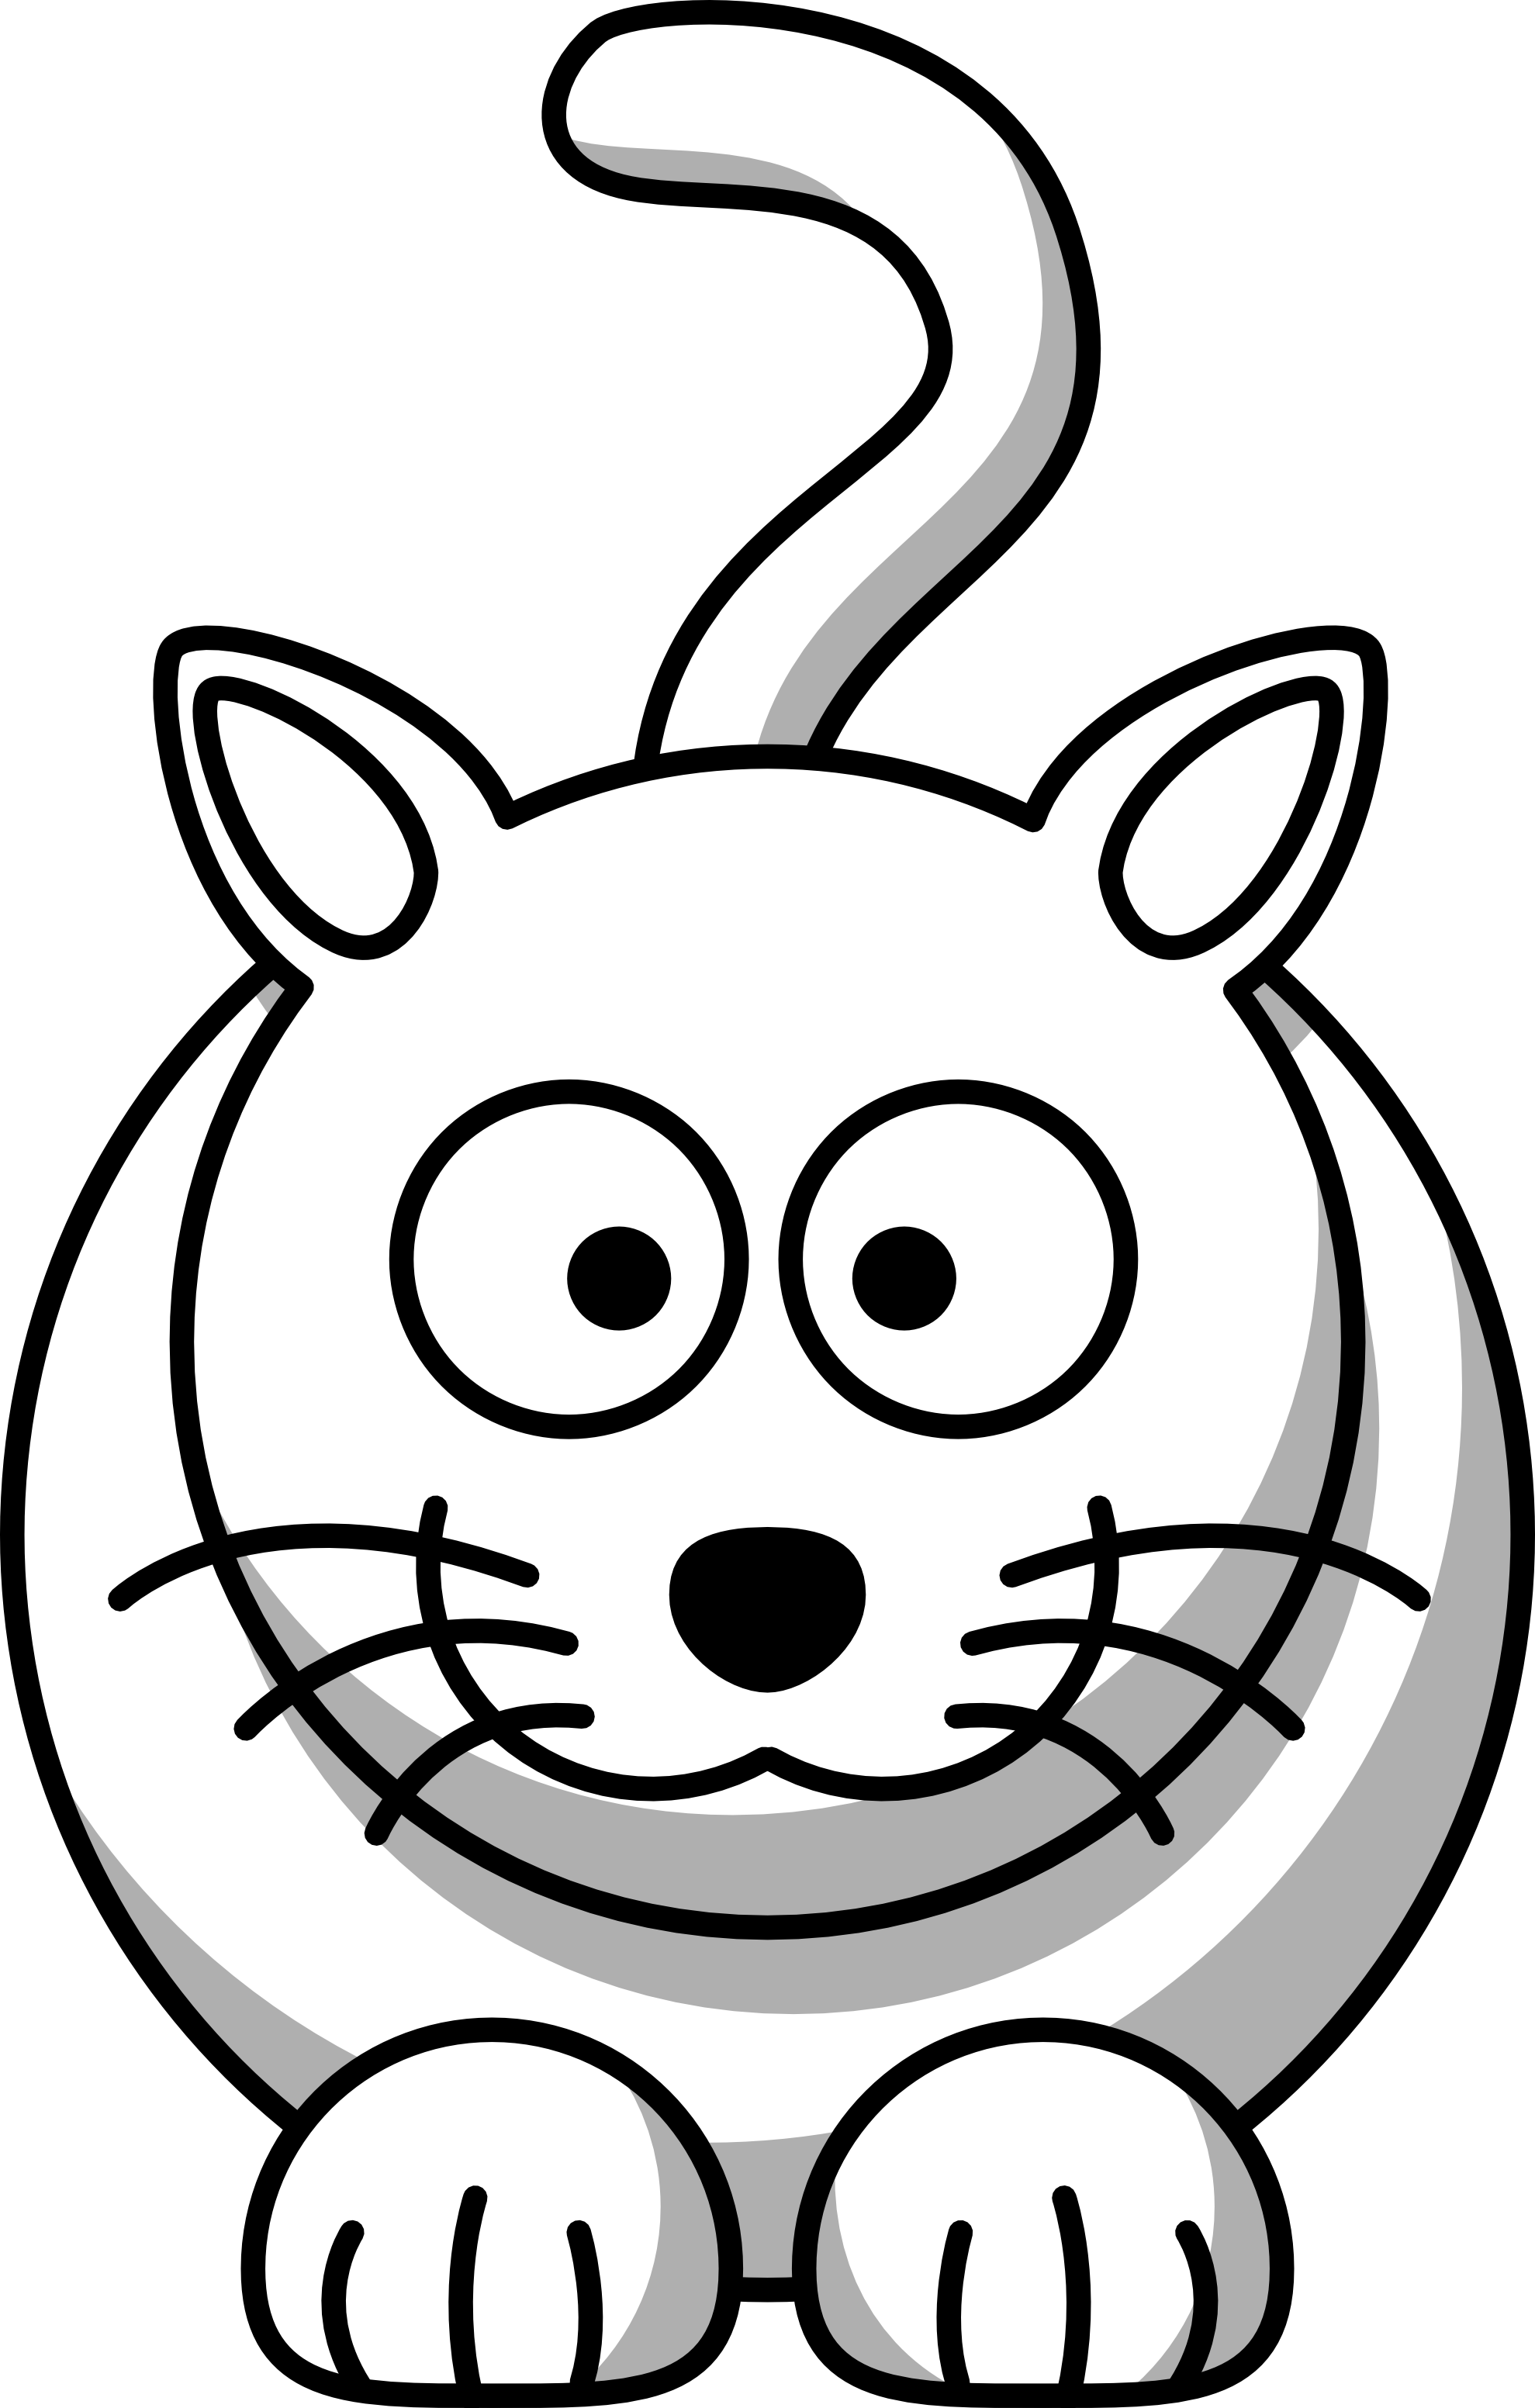 png freeuse stock Picture of cartoon animals. Candyland clipart black and white.